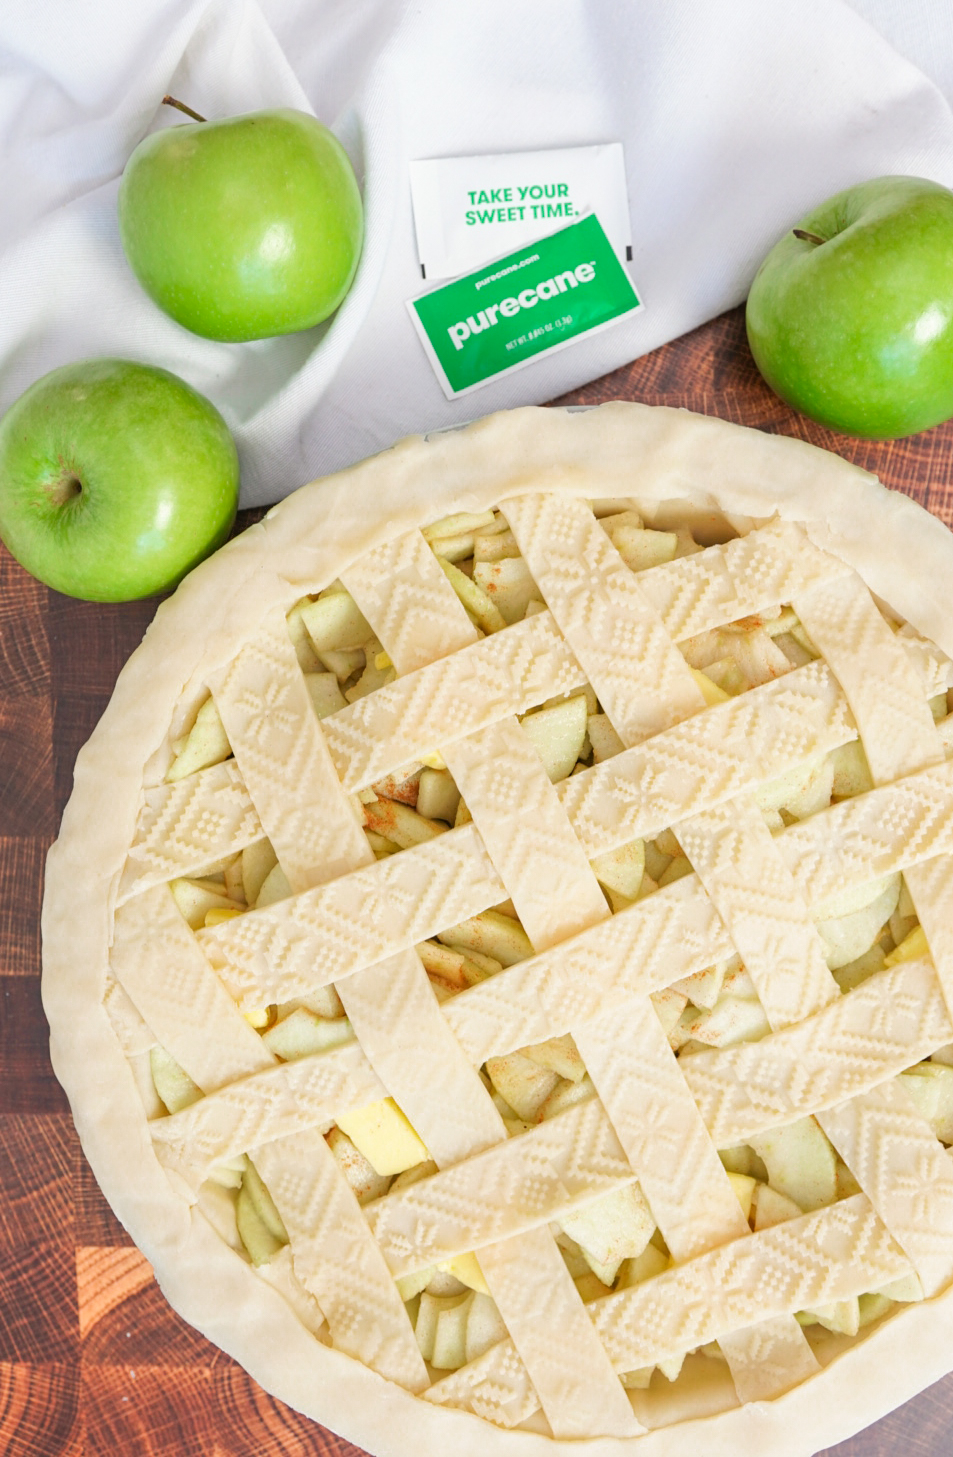 Sugar free apple pie